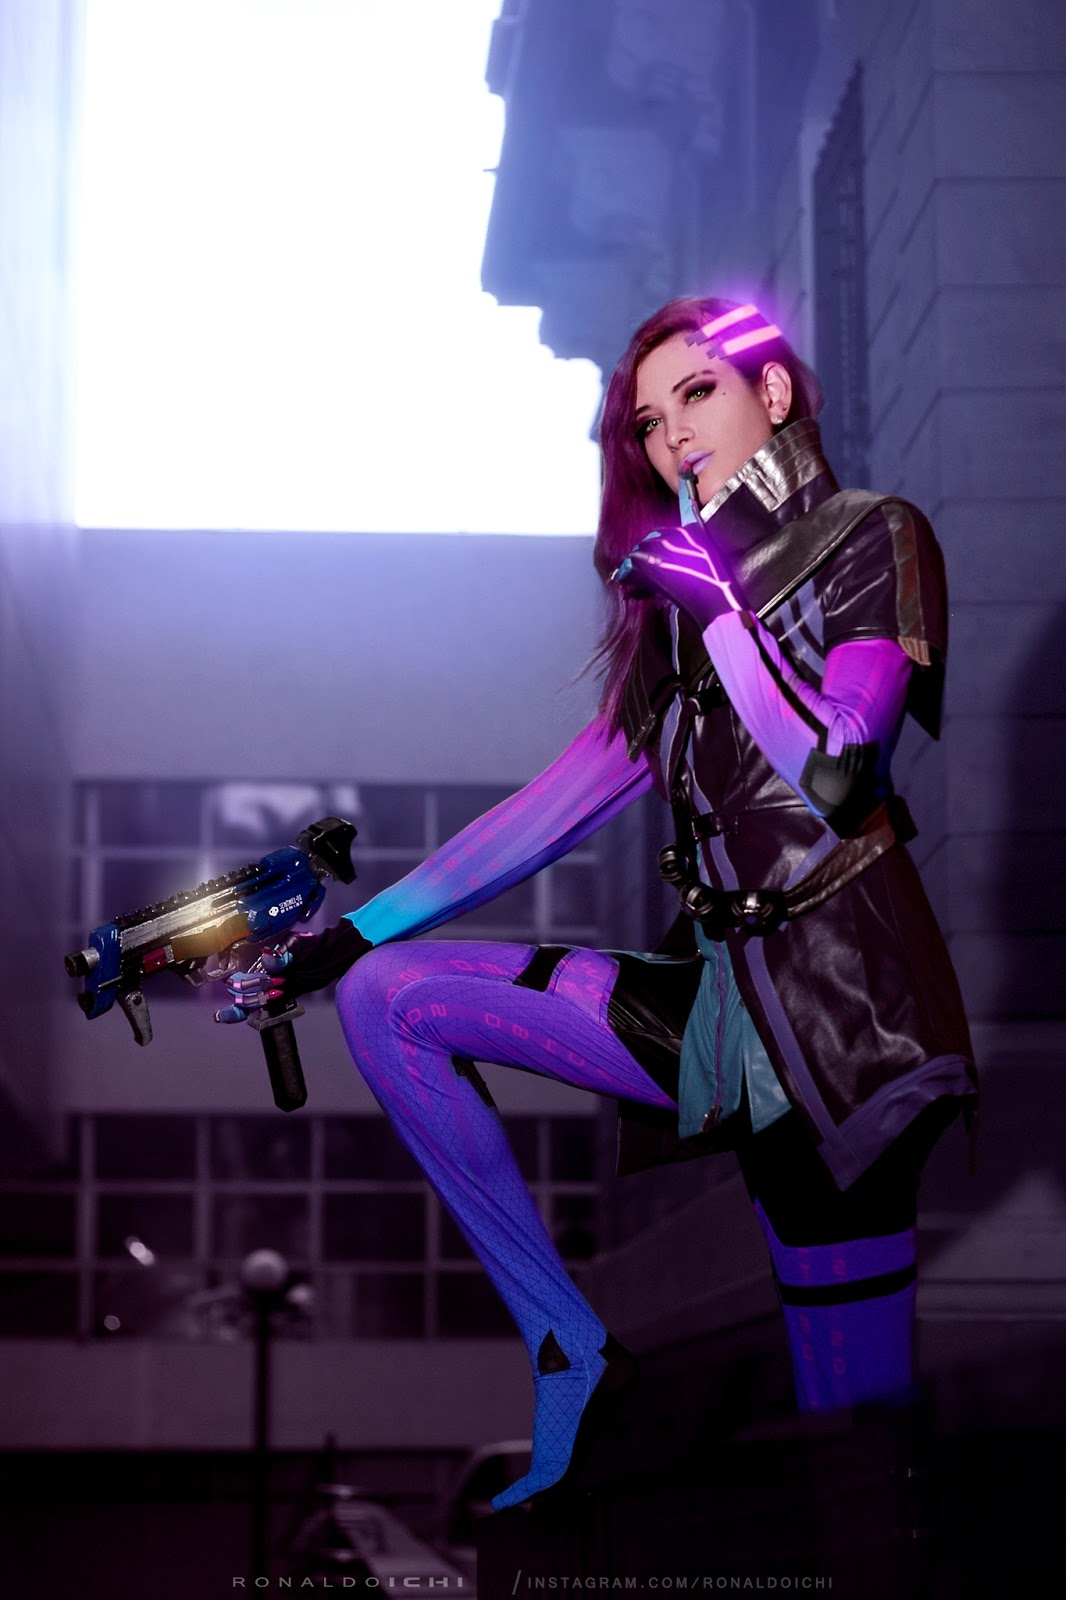 Ensaio fotográfico cosplay com a cosplayer Rizzy e sua Sombra do game Overwatch da Blizzard